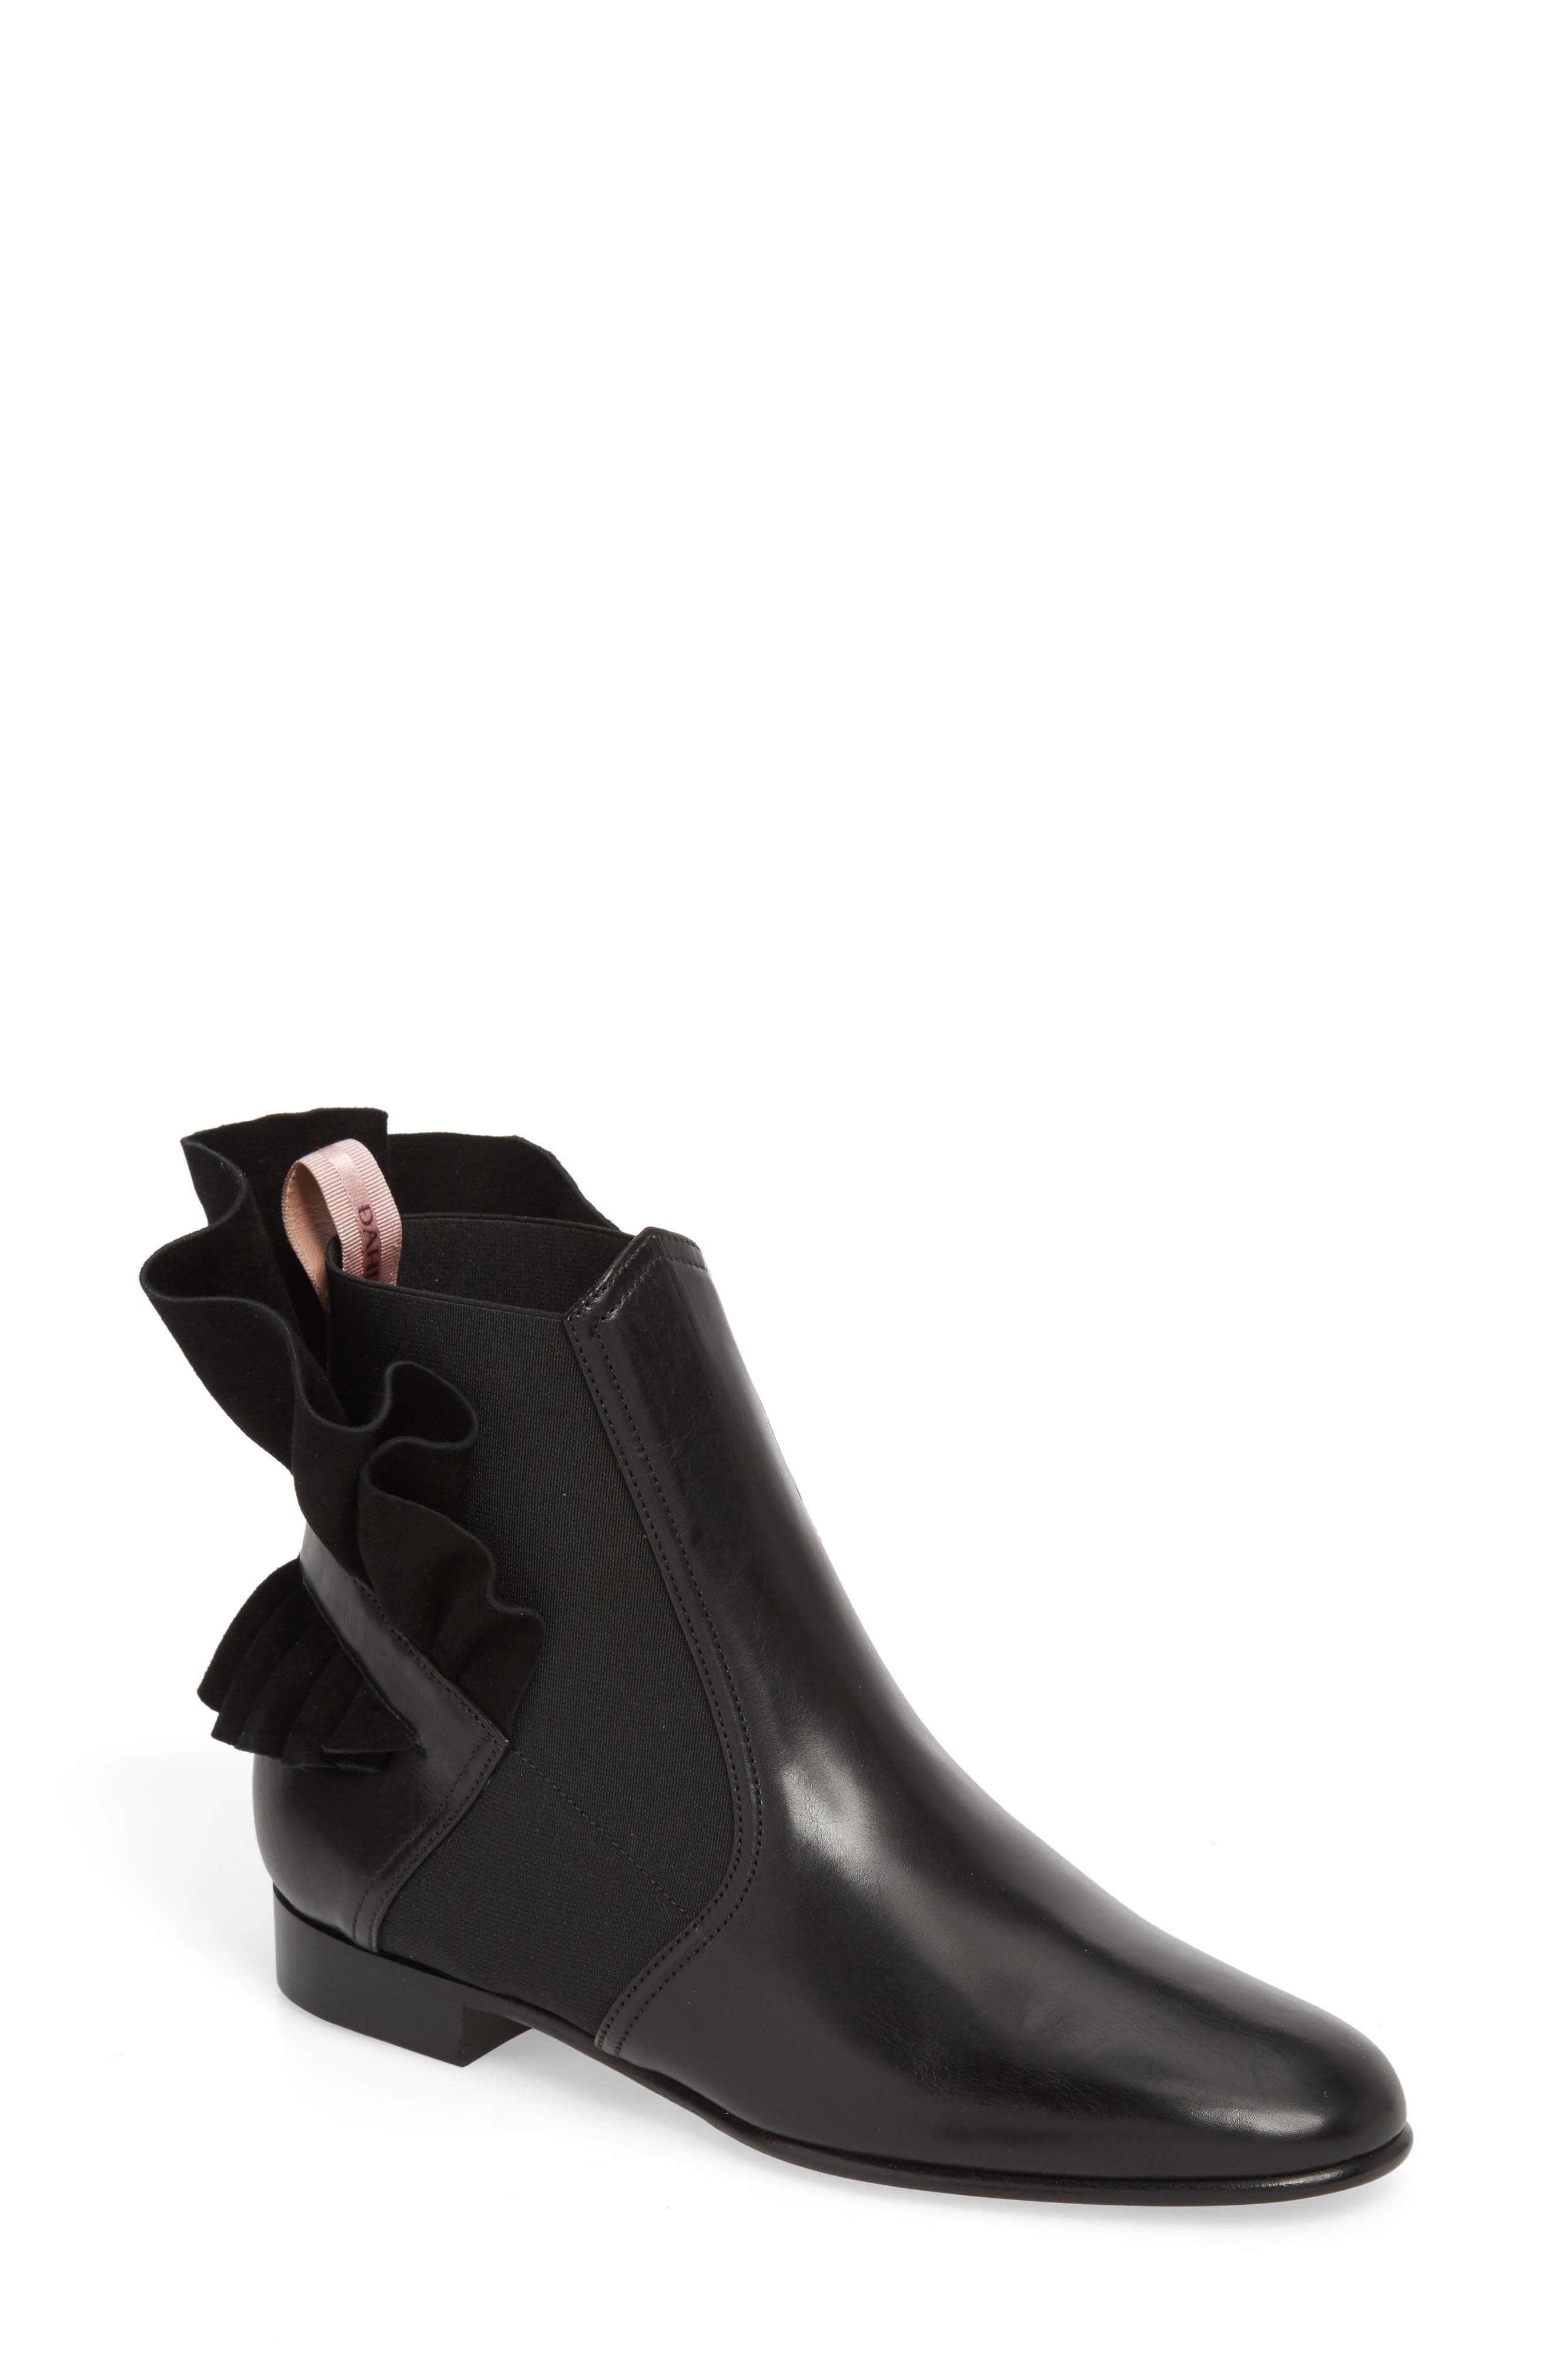 Frills For All Chelsea Boot,                             Main thumbnail 1, color,                             BLACK